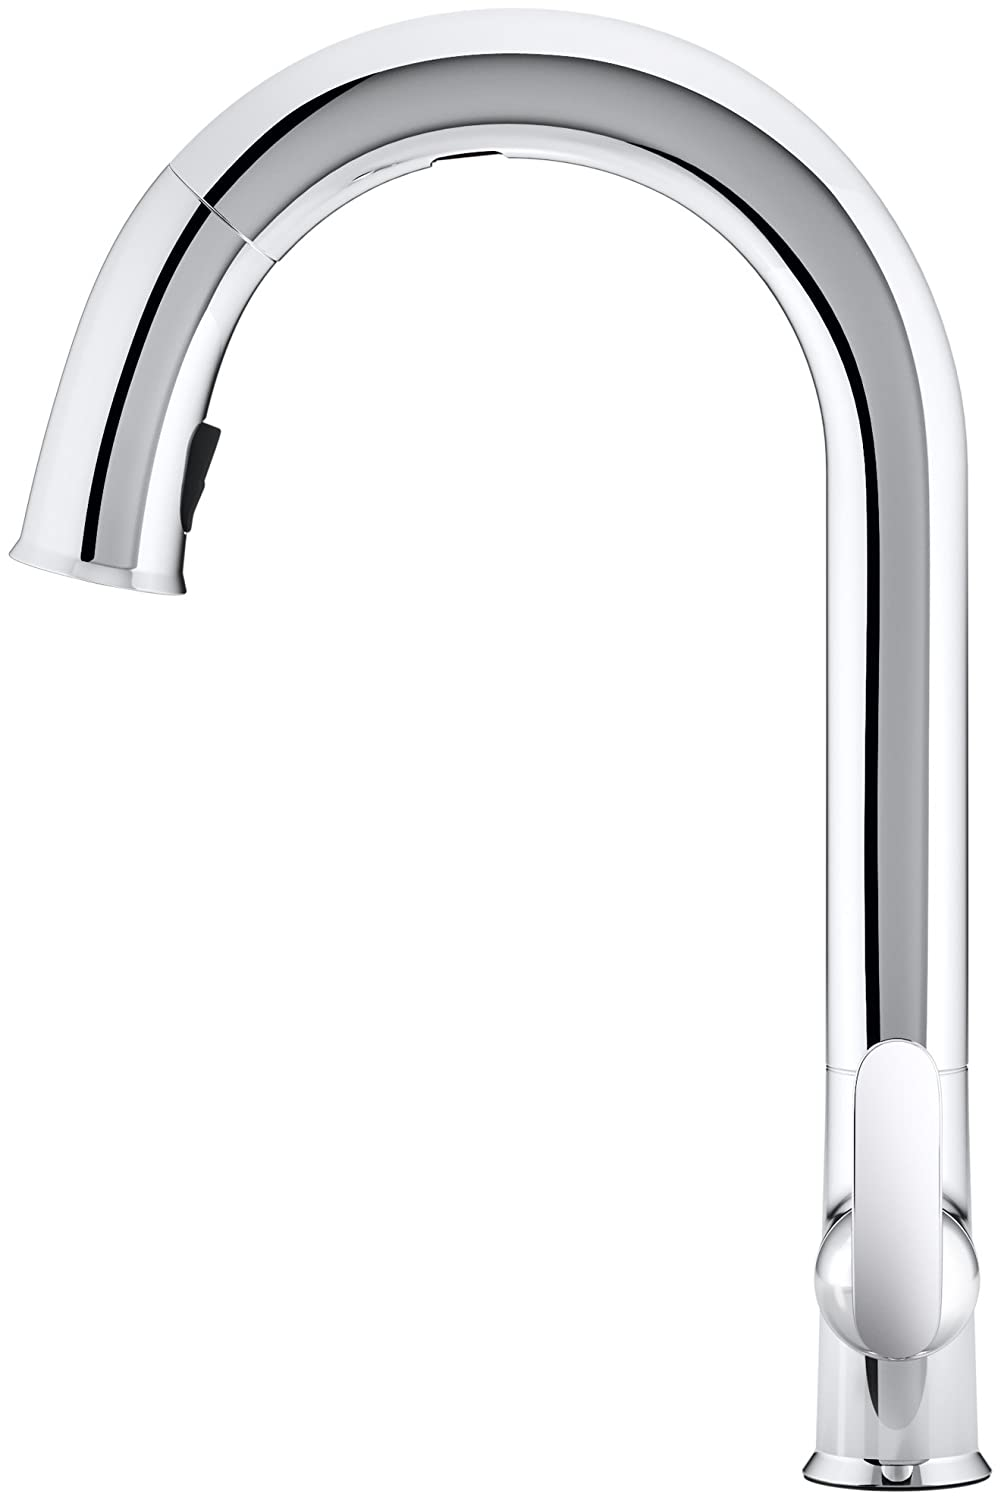 Kohler K-72218-VS Sensate Touchless Kitchen Faucet, Vibrant ...